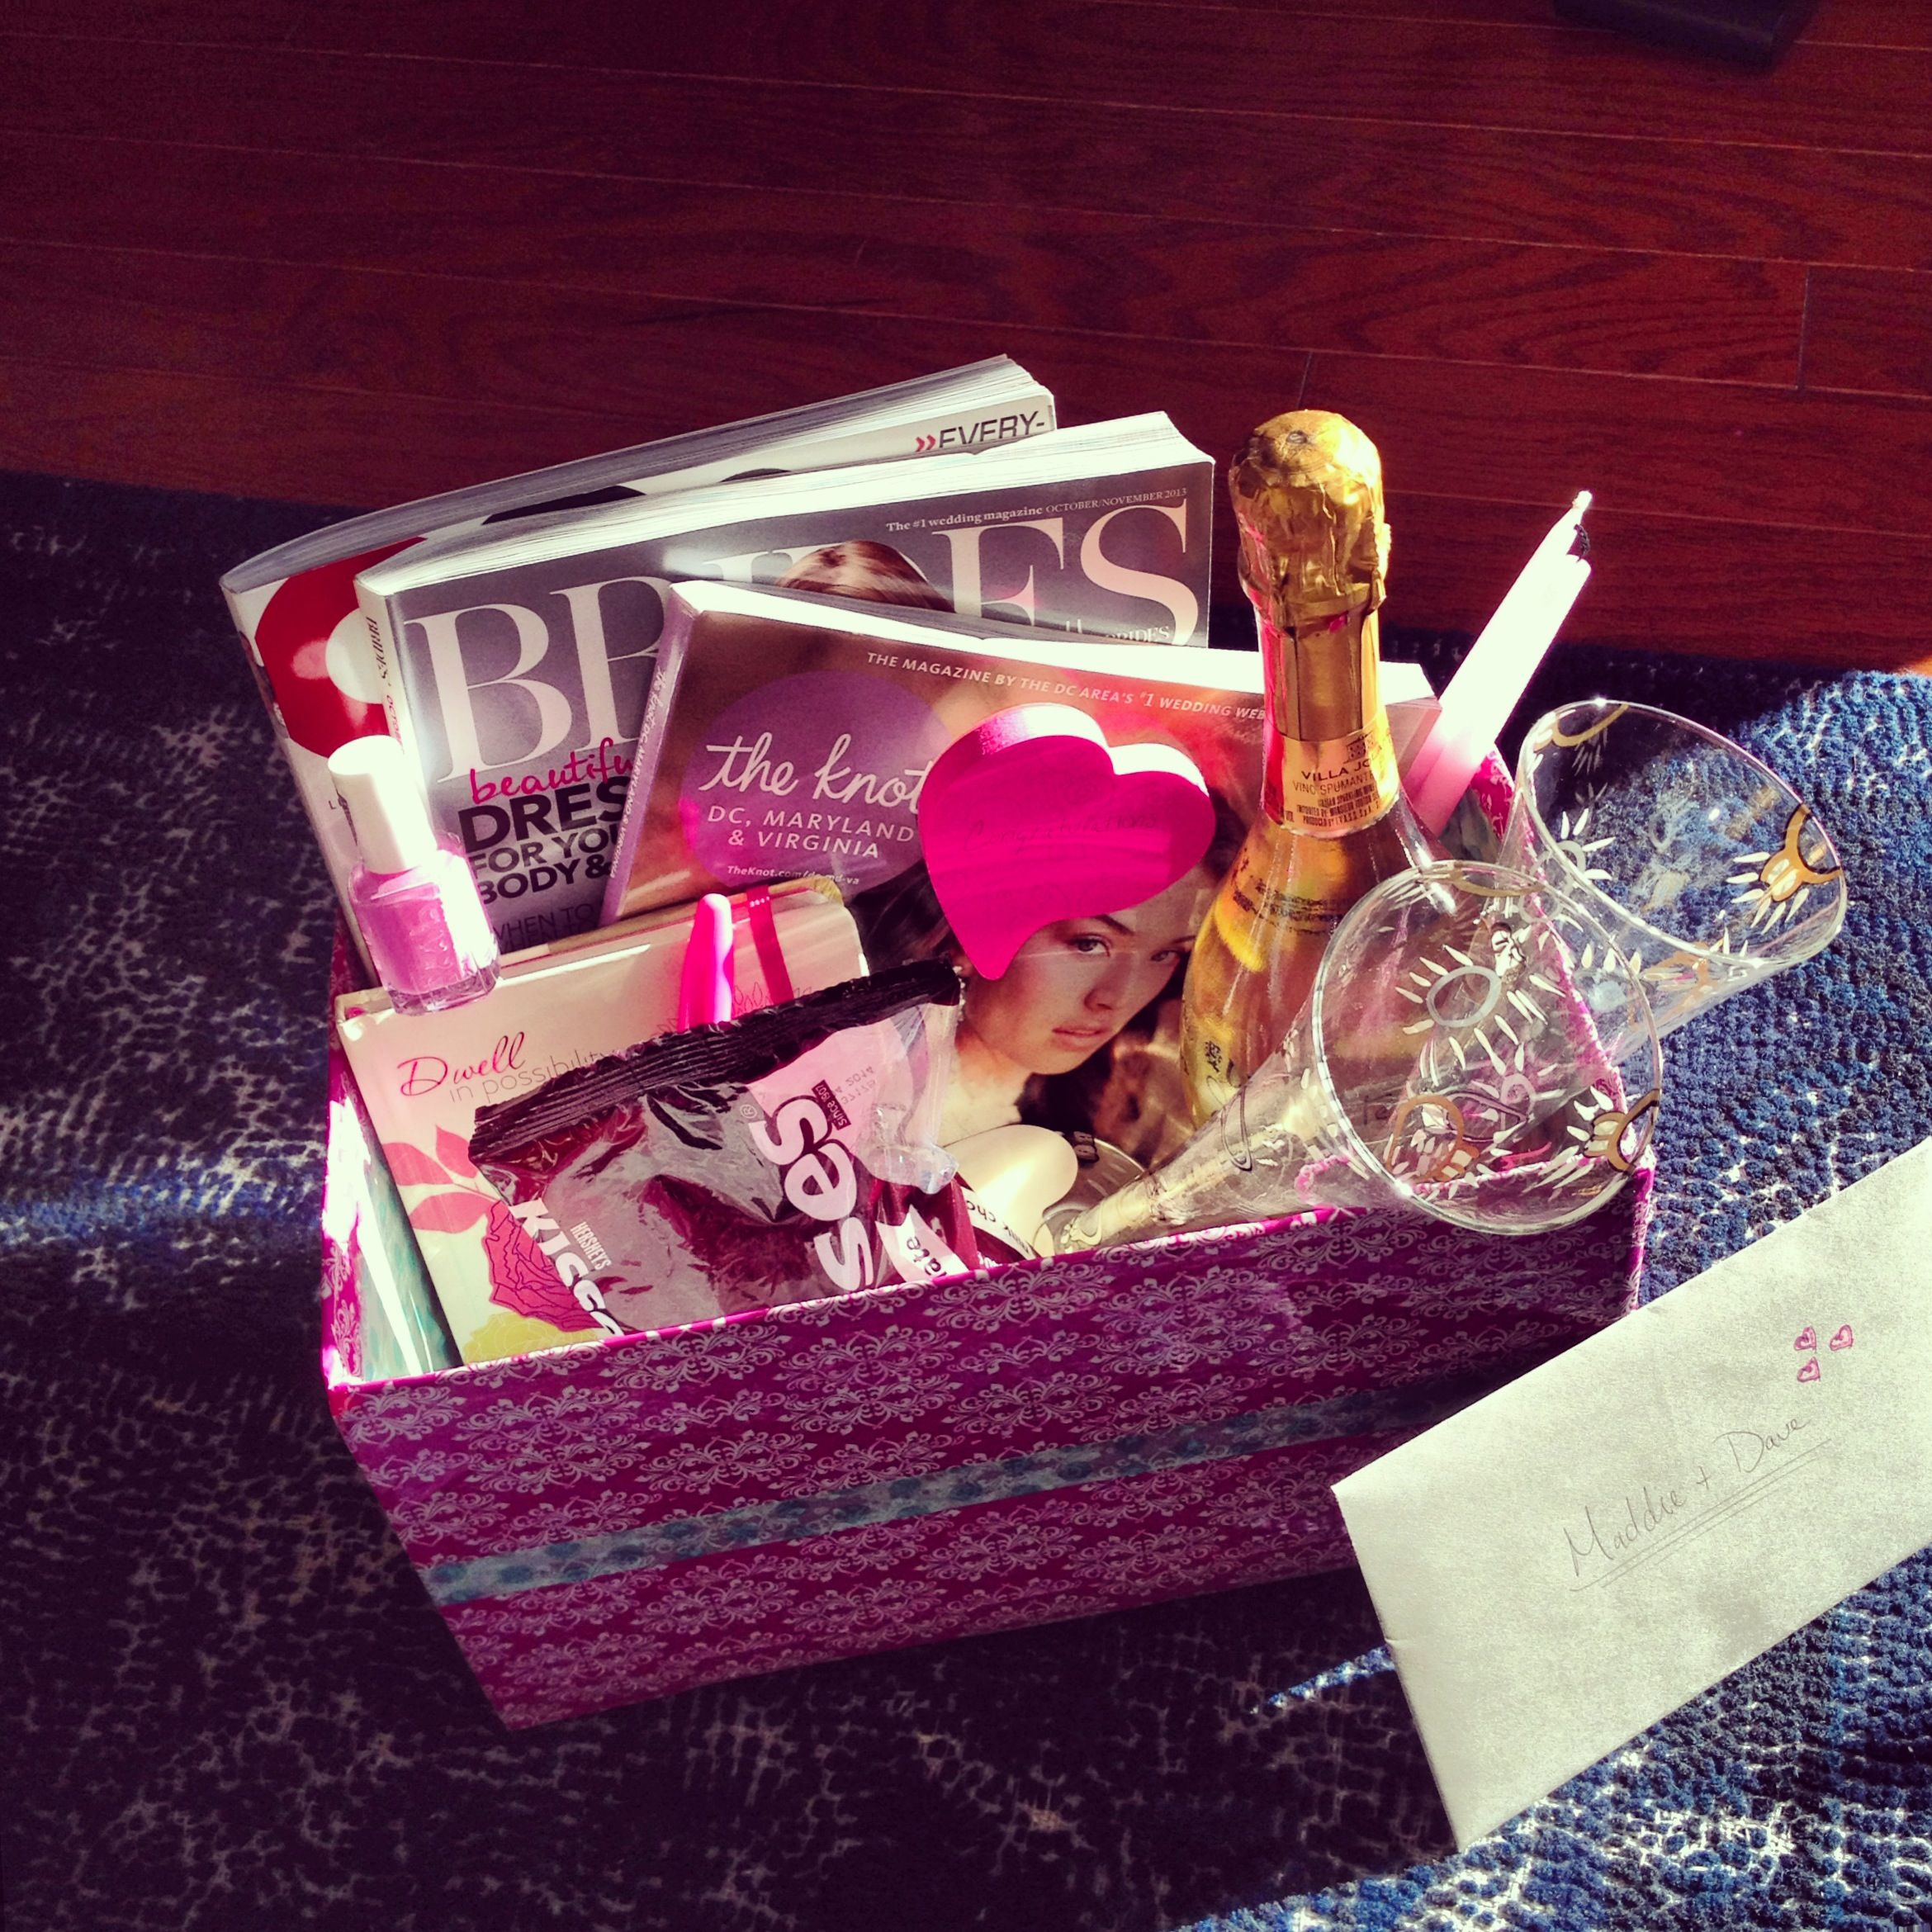 Post Wedding Gifts: Engagement Gift Basket 1. Wedding Magazines 2. GQ For The